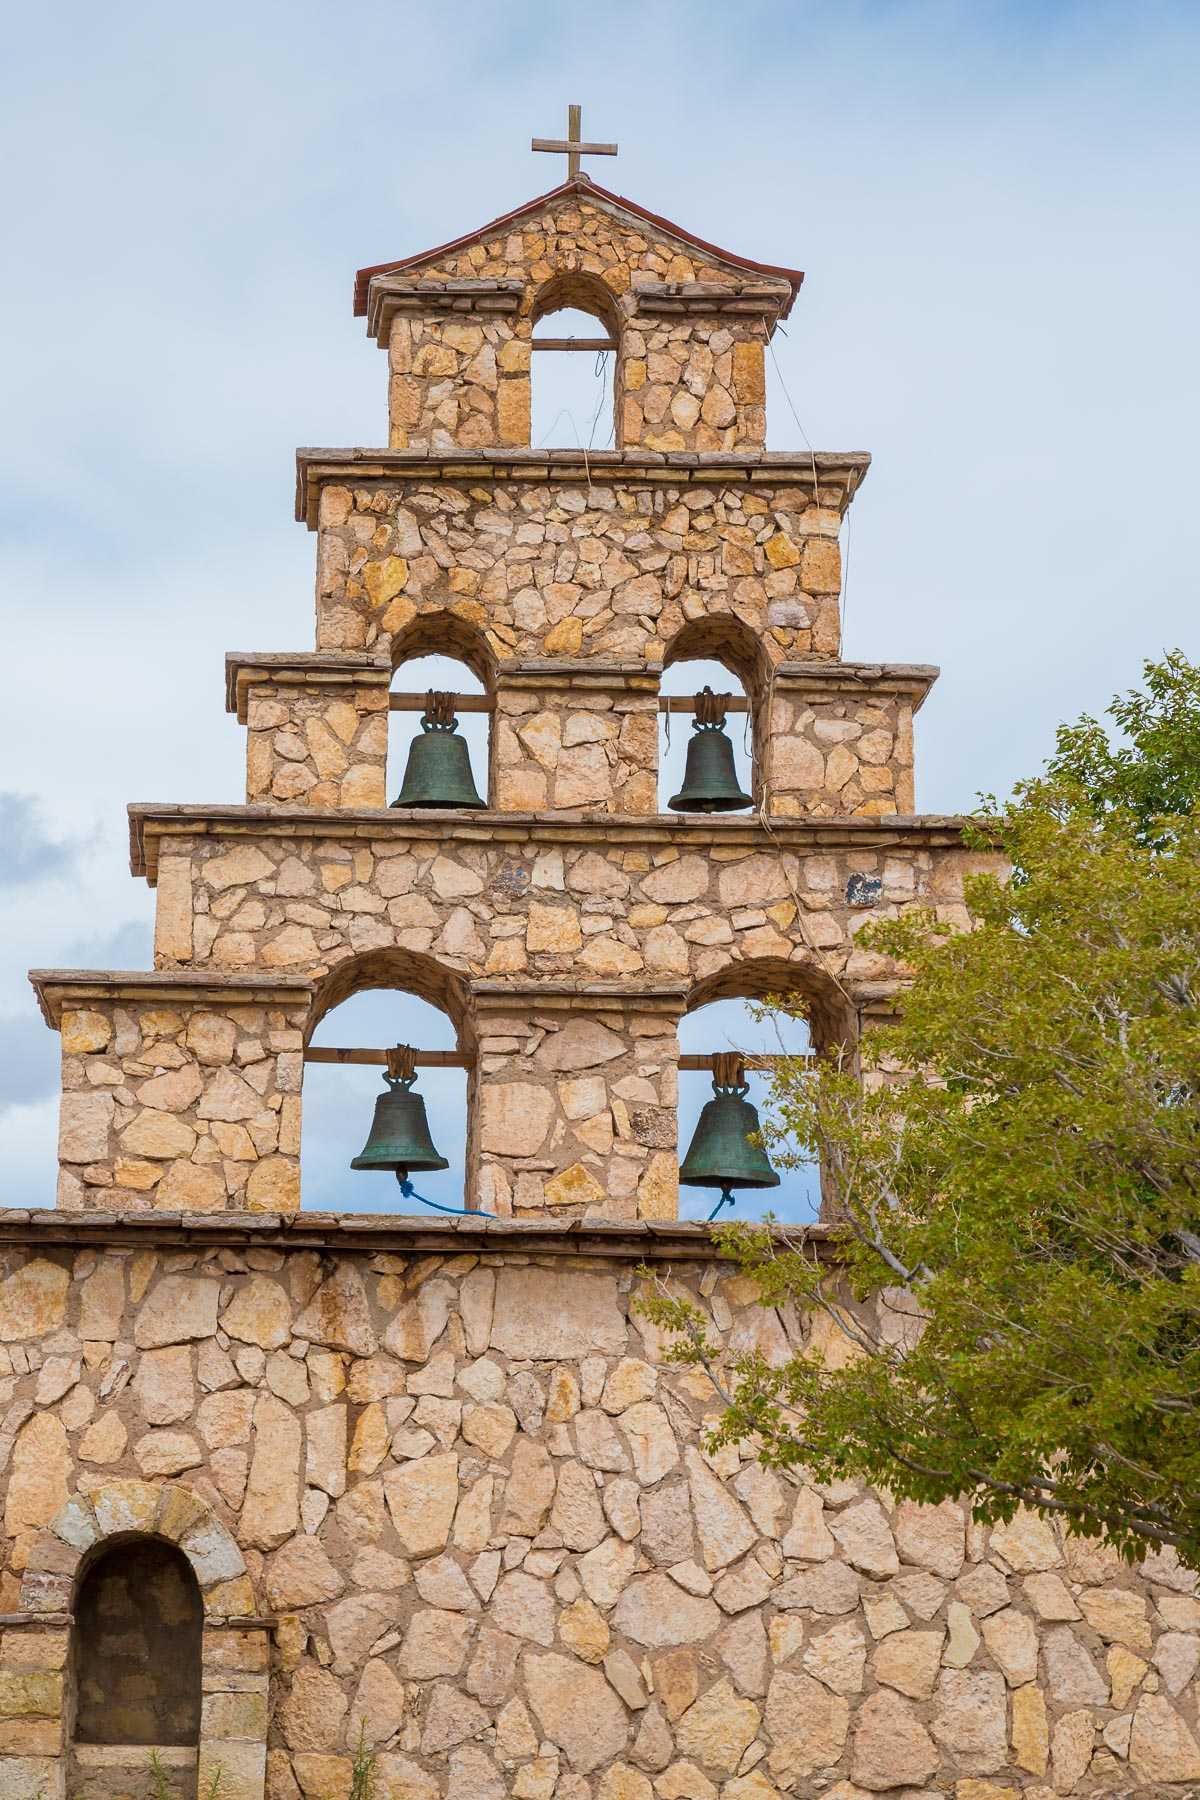 bells-colchani-village-church-uyuni-bolivia-south-america-travel-landscape-photographer-photography.jpg